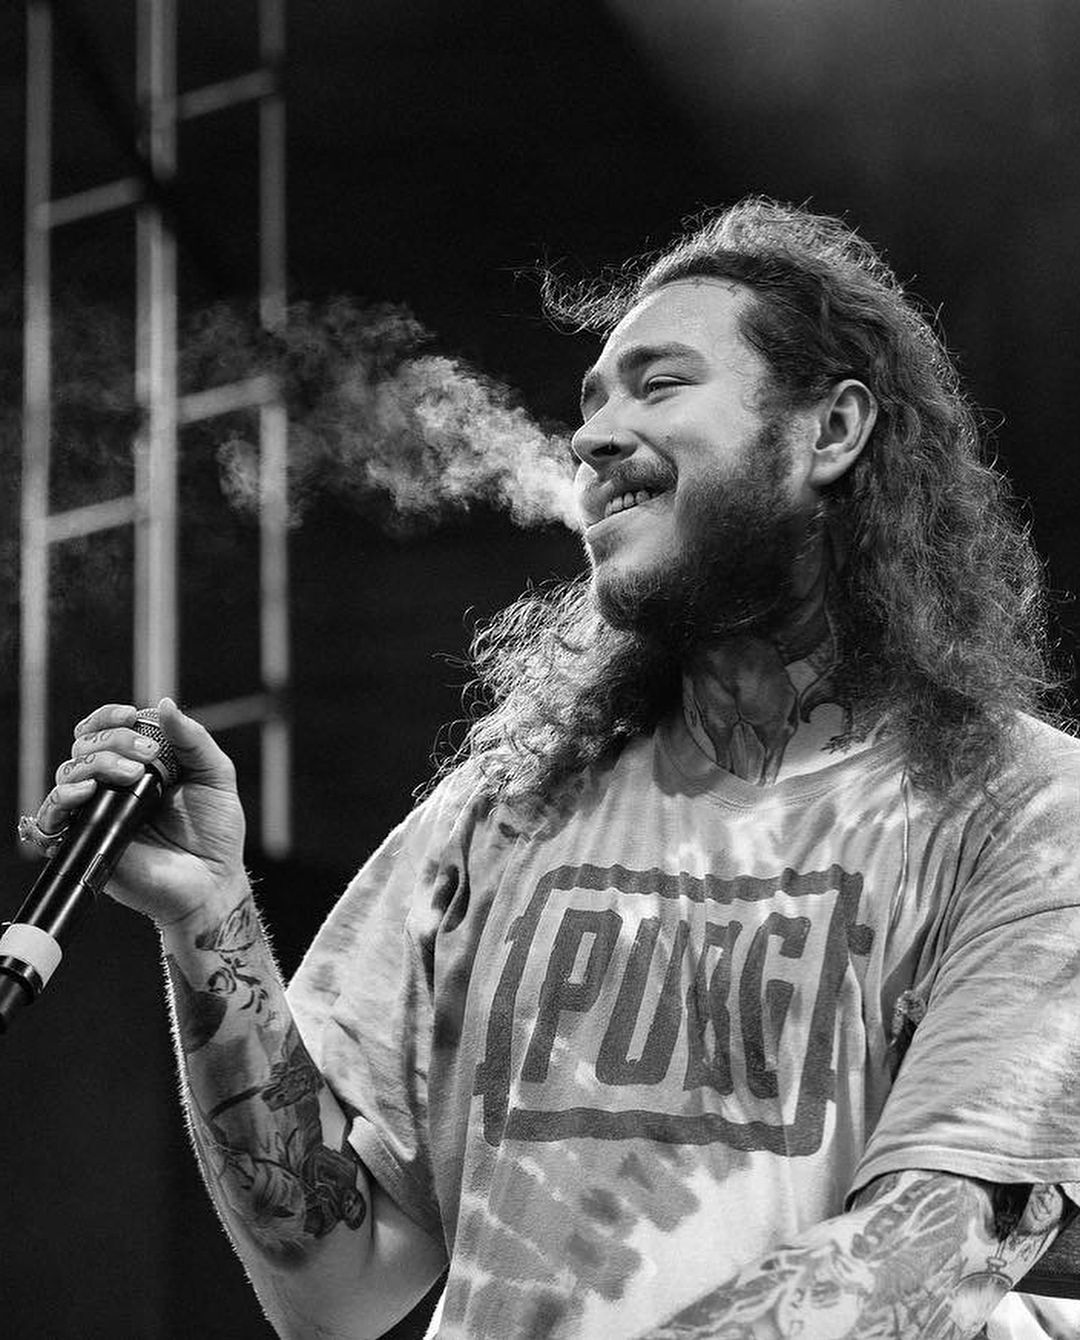 Pin by Anna on Posty Malony in 2019 Post malone, Post